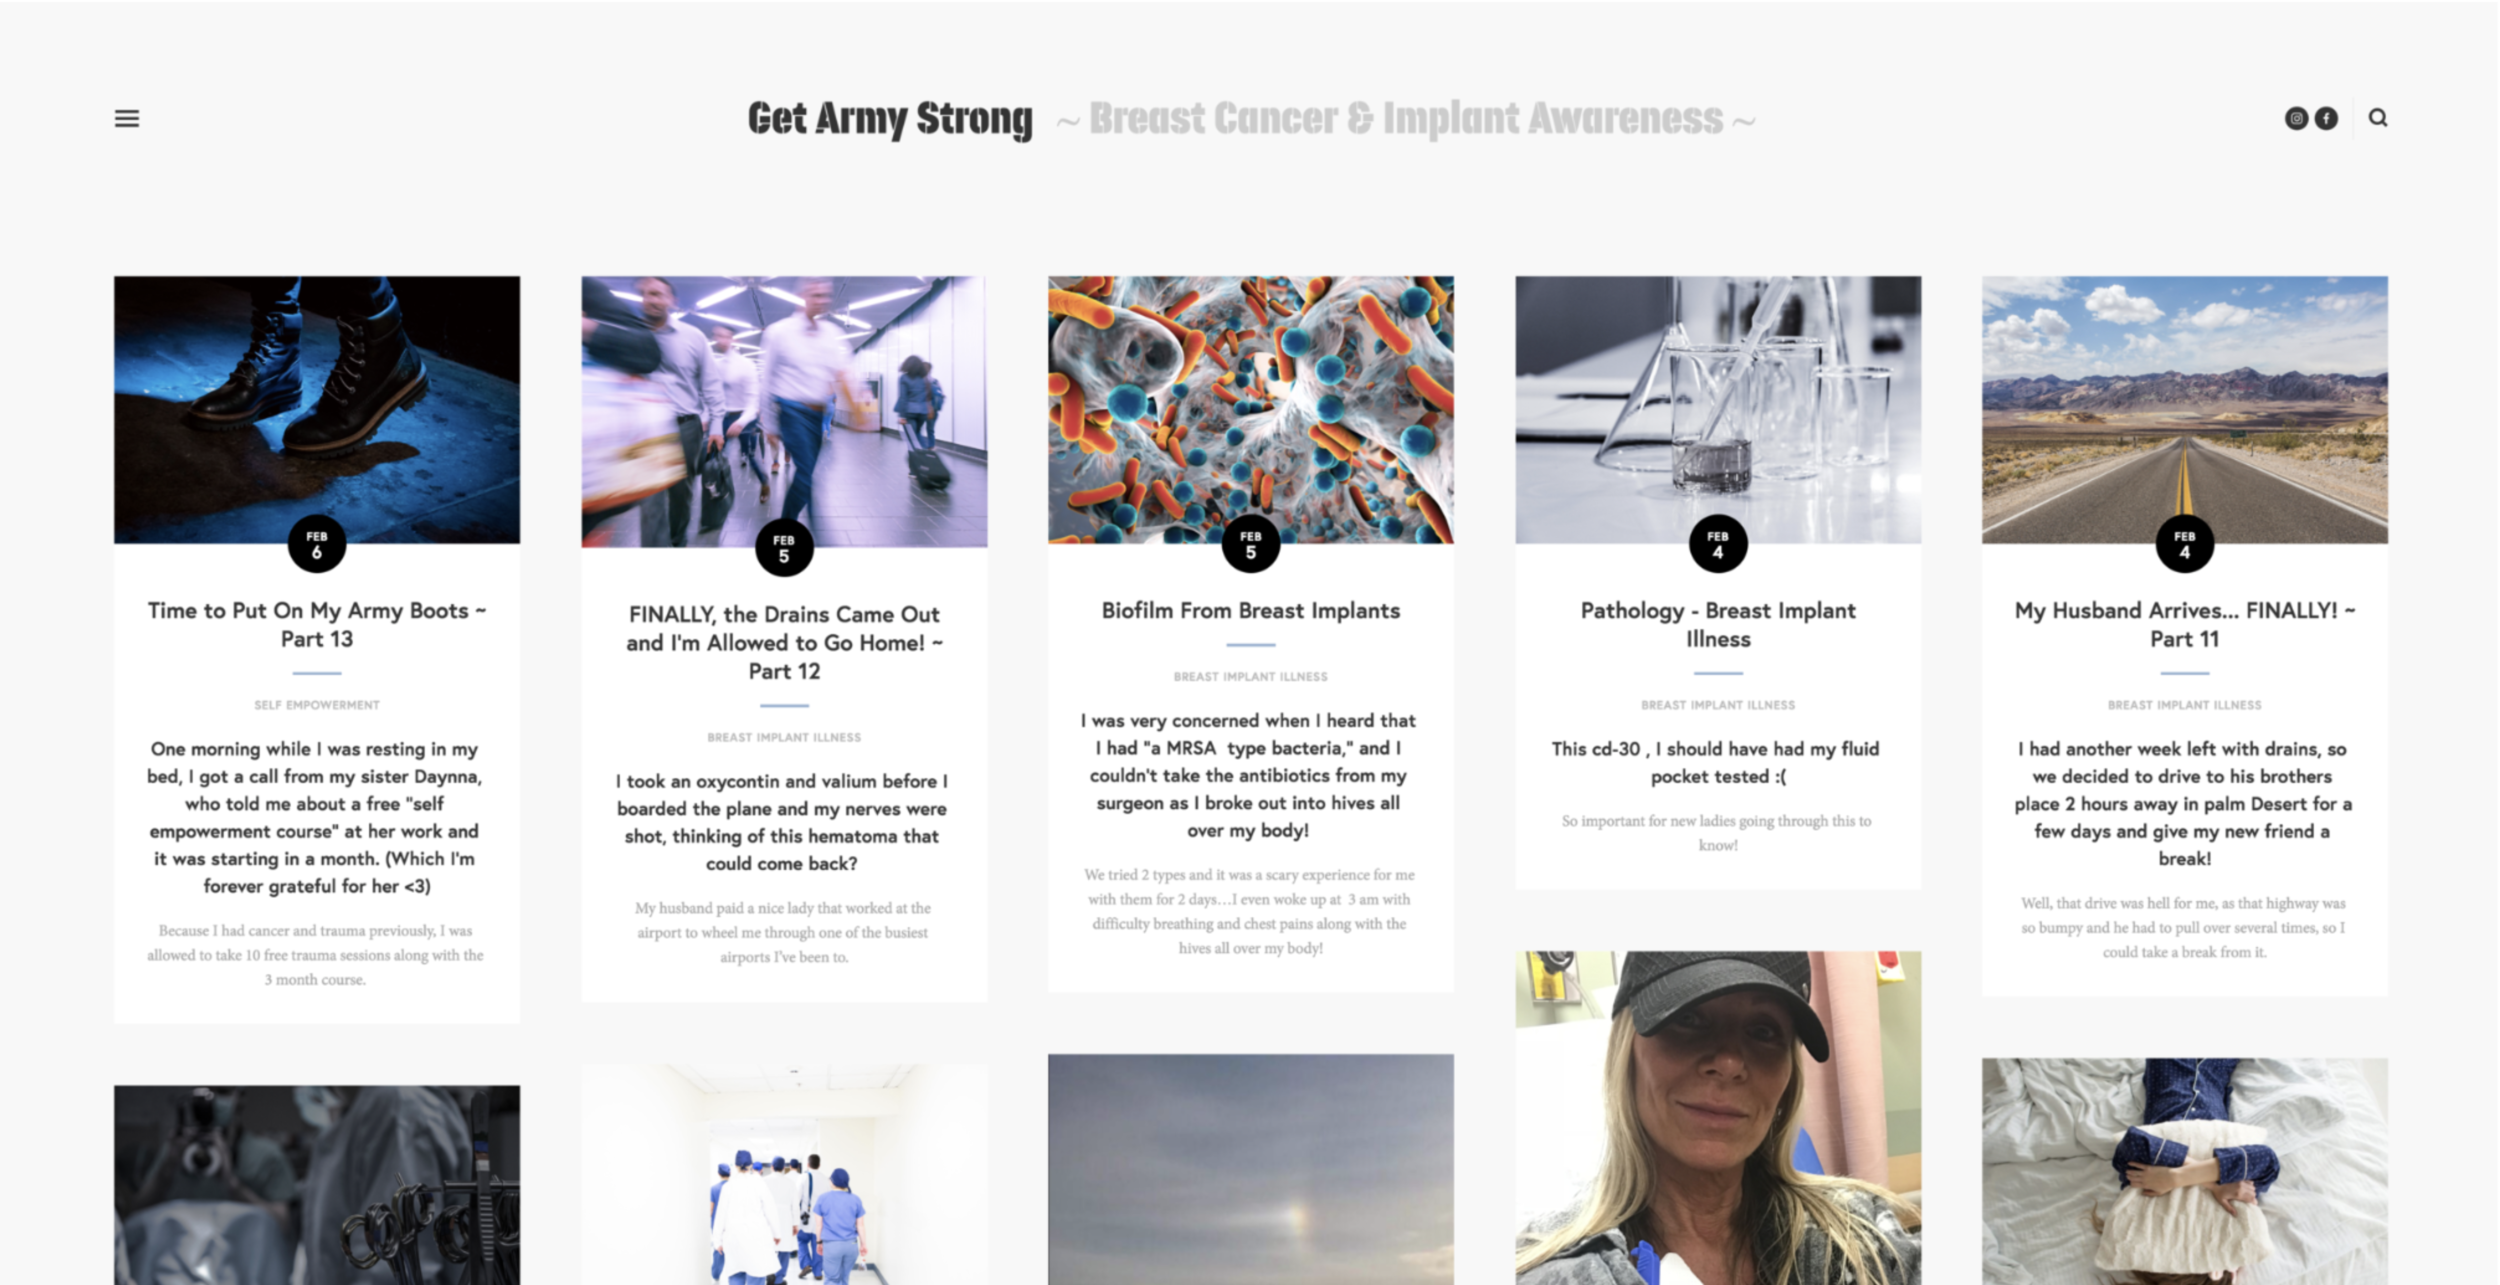 Get Army Strong - Donna Halme Designs designed a blog website for Get Army Strong owned by Shannon Sayers who has gone through both breast cancer and breast implant illness. The Get Army Strong blog tells Shannon's story of the horrific and courageous journey of strength and her will to live through all the setbacks she faced along the way. When I was approached by Shannon, listened to her story, I immediately wanted to help. She had a great passion to make sure this information gets out to readers. This was not easy for Shannon by any means, as she had to relive the negative emotions these stories surfaced when writing them. However, we agreed that this became a positive experience, one that helped as part of her healing process. I truly loved working on this project and hope that it helps those who have or are suffering with these illnesses find answers, hope, and inspiration in her blogs. Shannon had many photos that we put together with the various blog content she had. I started at the beginning of her journey and each blog tells her story with photos, many resource links, and videos. I created a special Resources page for books that have helped her, and videos about breast implant illness. Both a Contact and Contributor pages where created for those wishing to contact Shannon or interested in becoming a blog contributor. In order to get her blogs out to her subscribers, I integrated MailChimp which is a email RSS Campaign within her Squarespace website. This is a very special project, one that I'm very honoured to have been given.